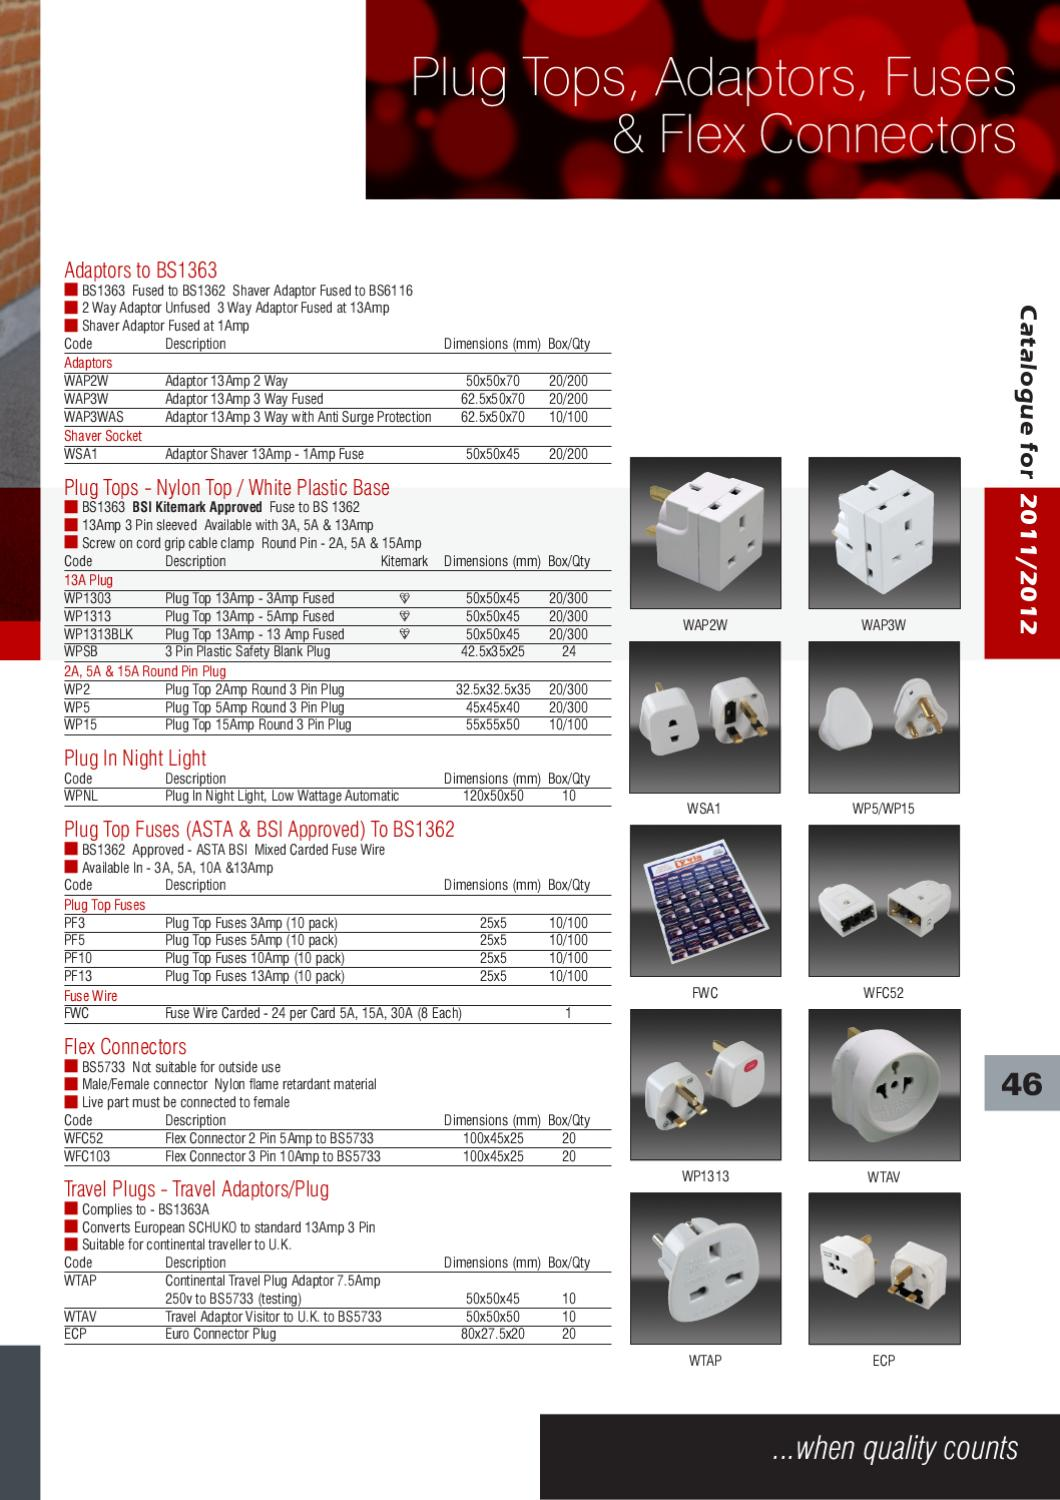 Axiom Wiring Accessories By Ced Elec Issuu Mk Devices Catalogue 2016